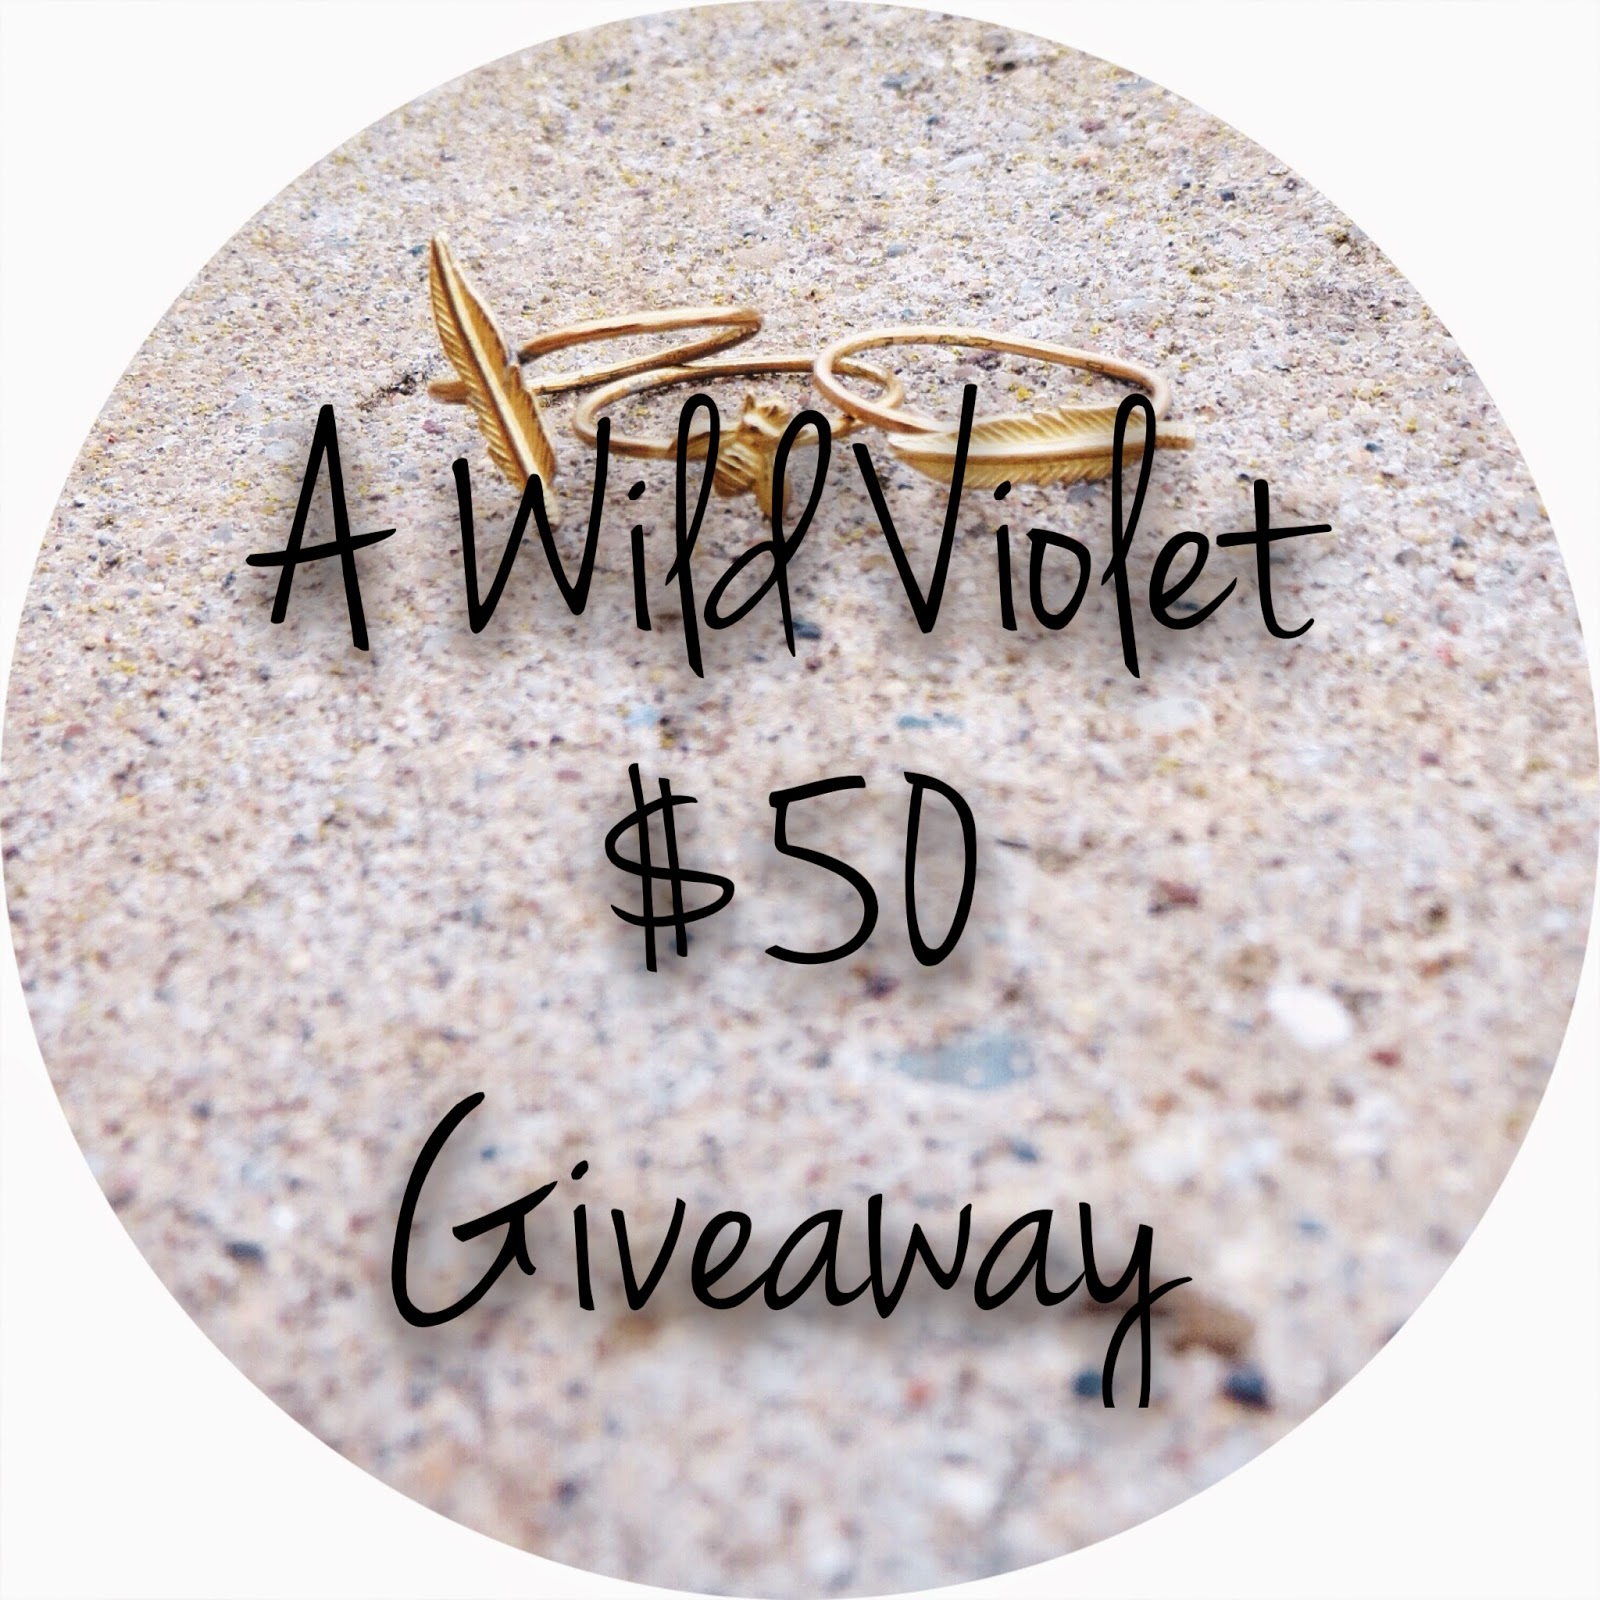 a wild violet, etsy, handmade jewelry, freebie friday, giveaways, etsy giveaway, voucher giveaway, free shop credit, sweepstakes,